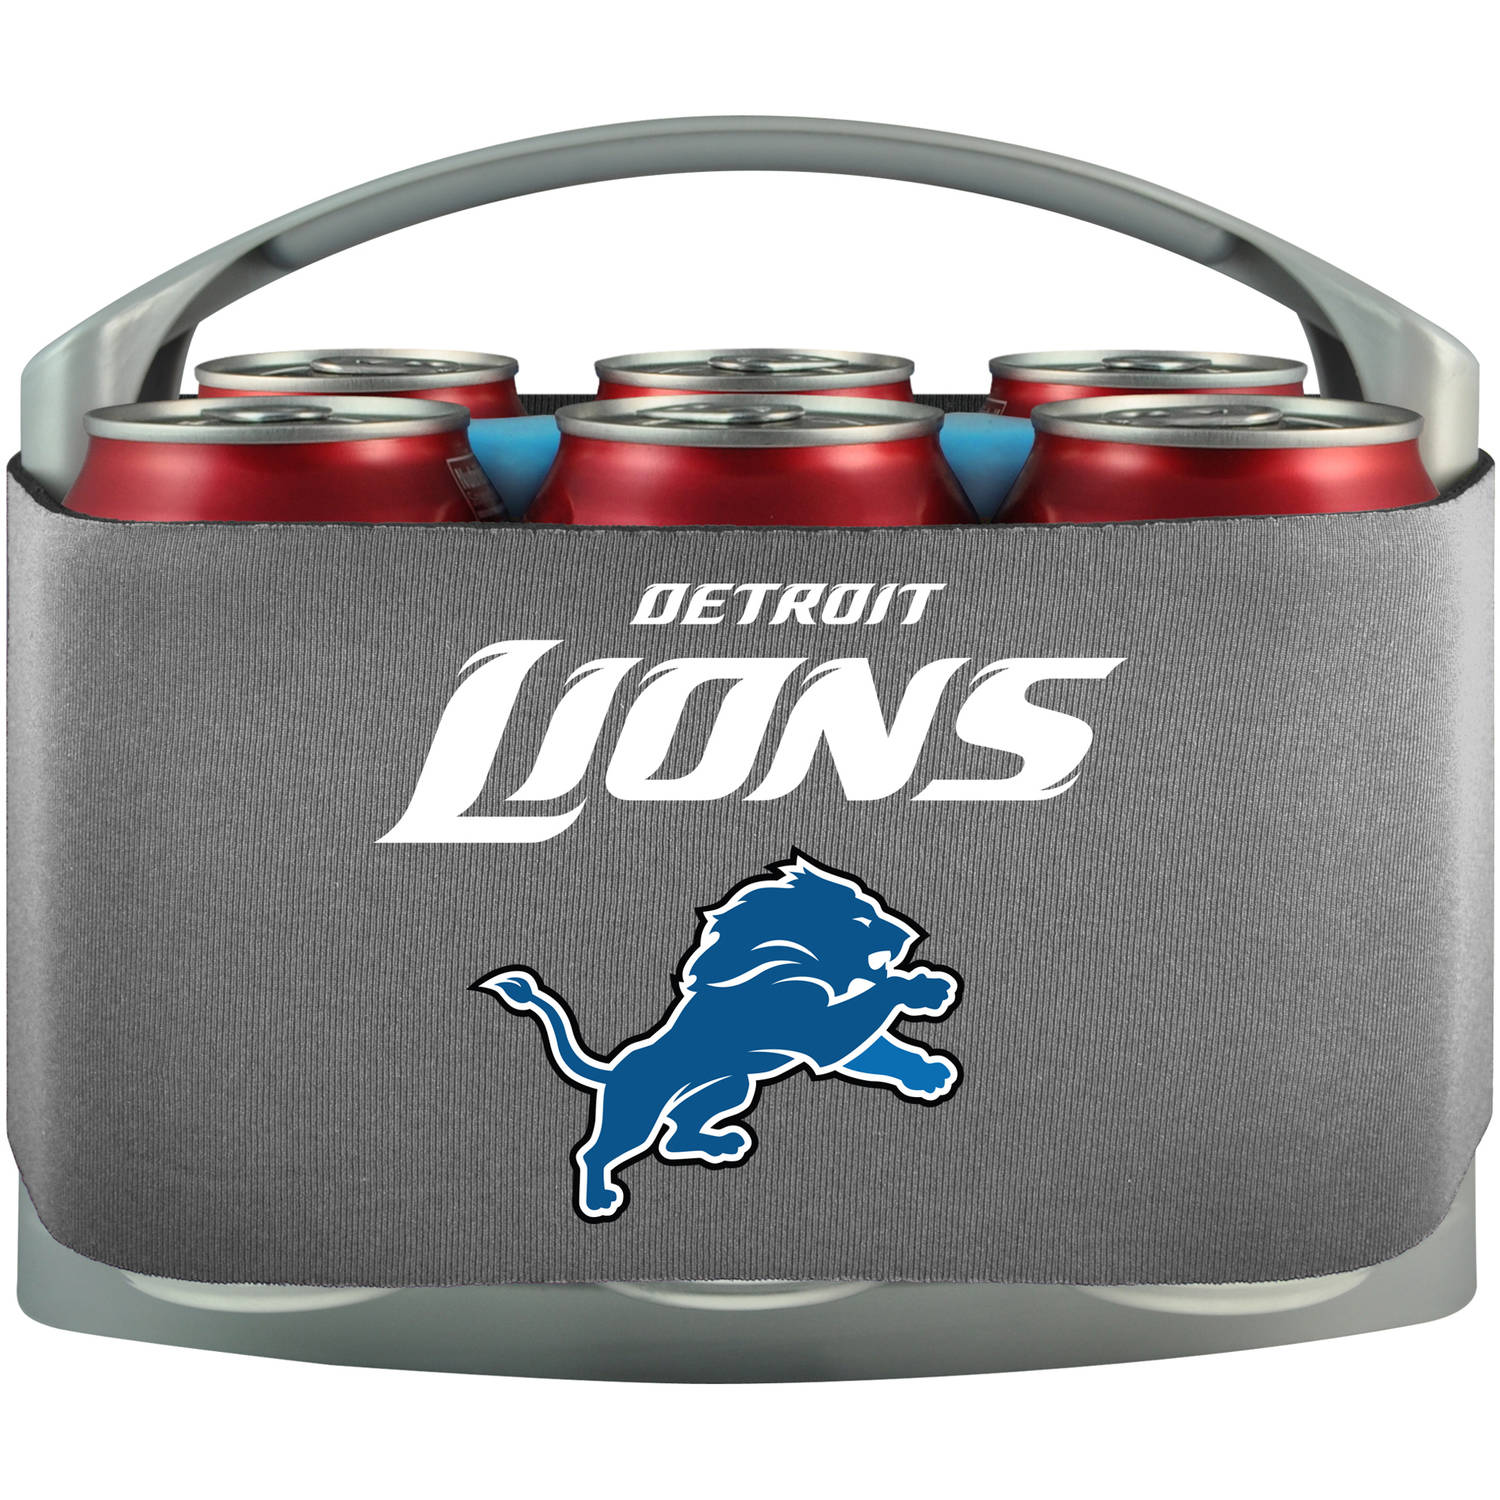 NFL Detroit Lions Cool 6 Cooler